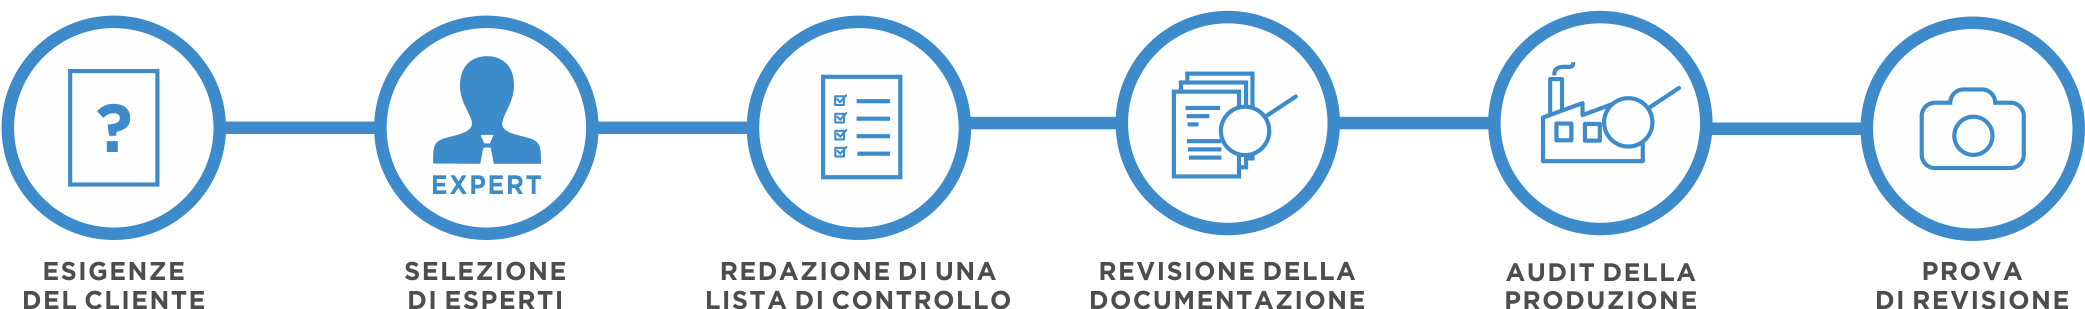 La procedura di audit personalizzato